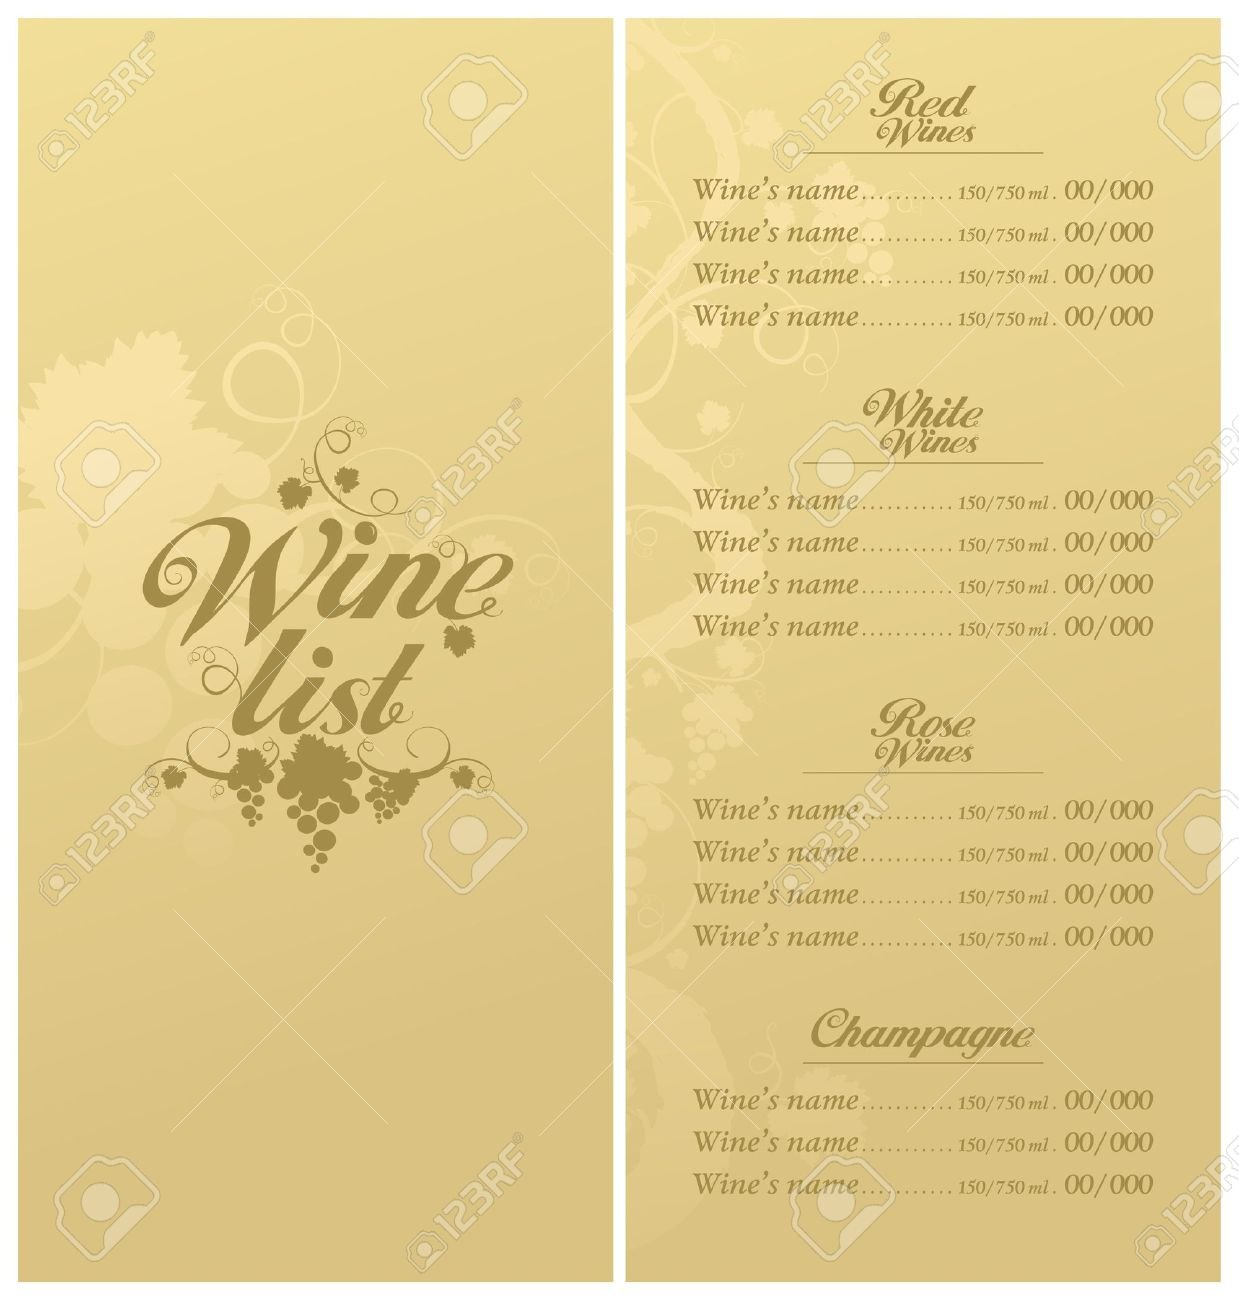 Wine List Menu Card Design Template Royalty Free Cliparts Vectors Regarding Free Wine Menu Template